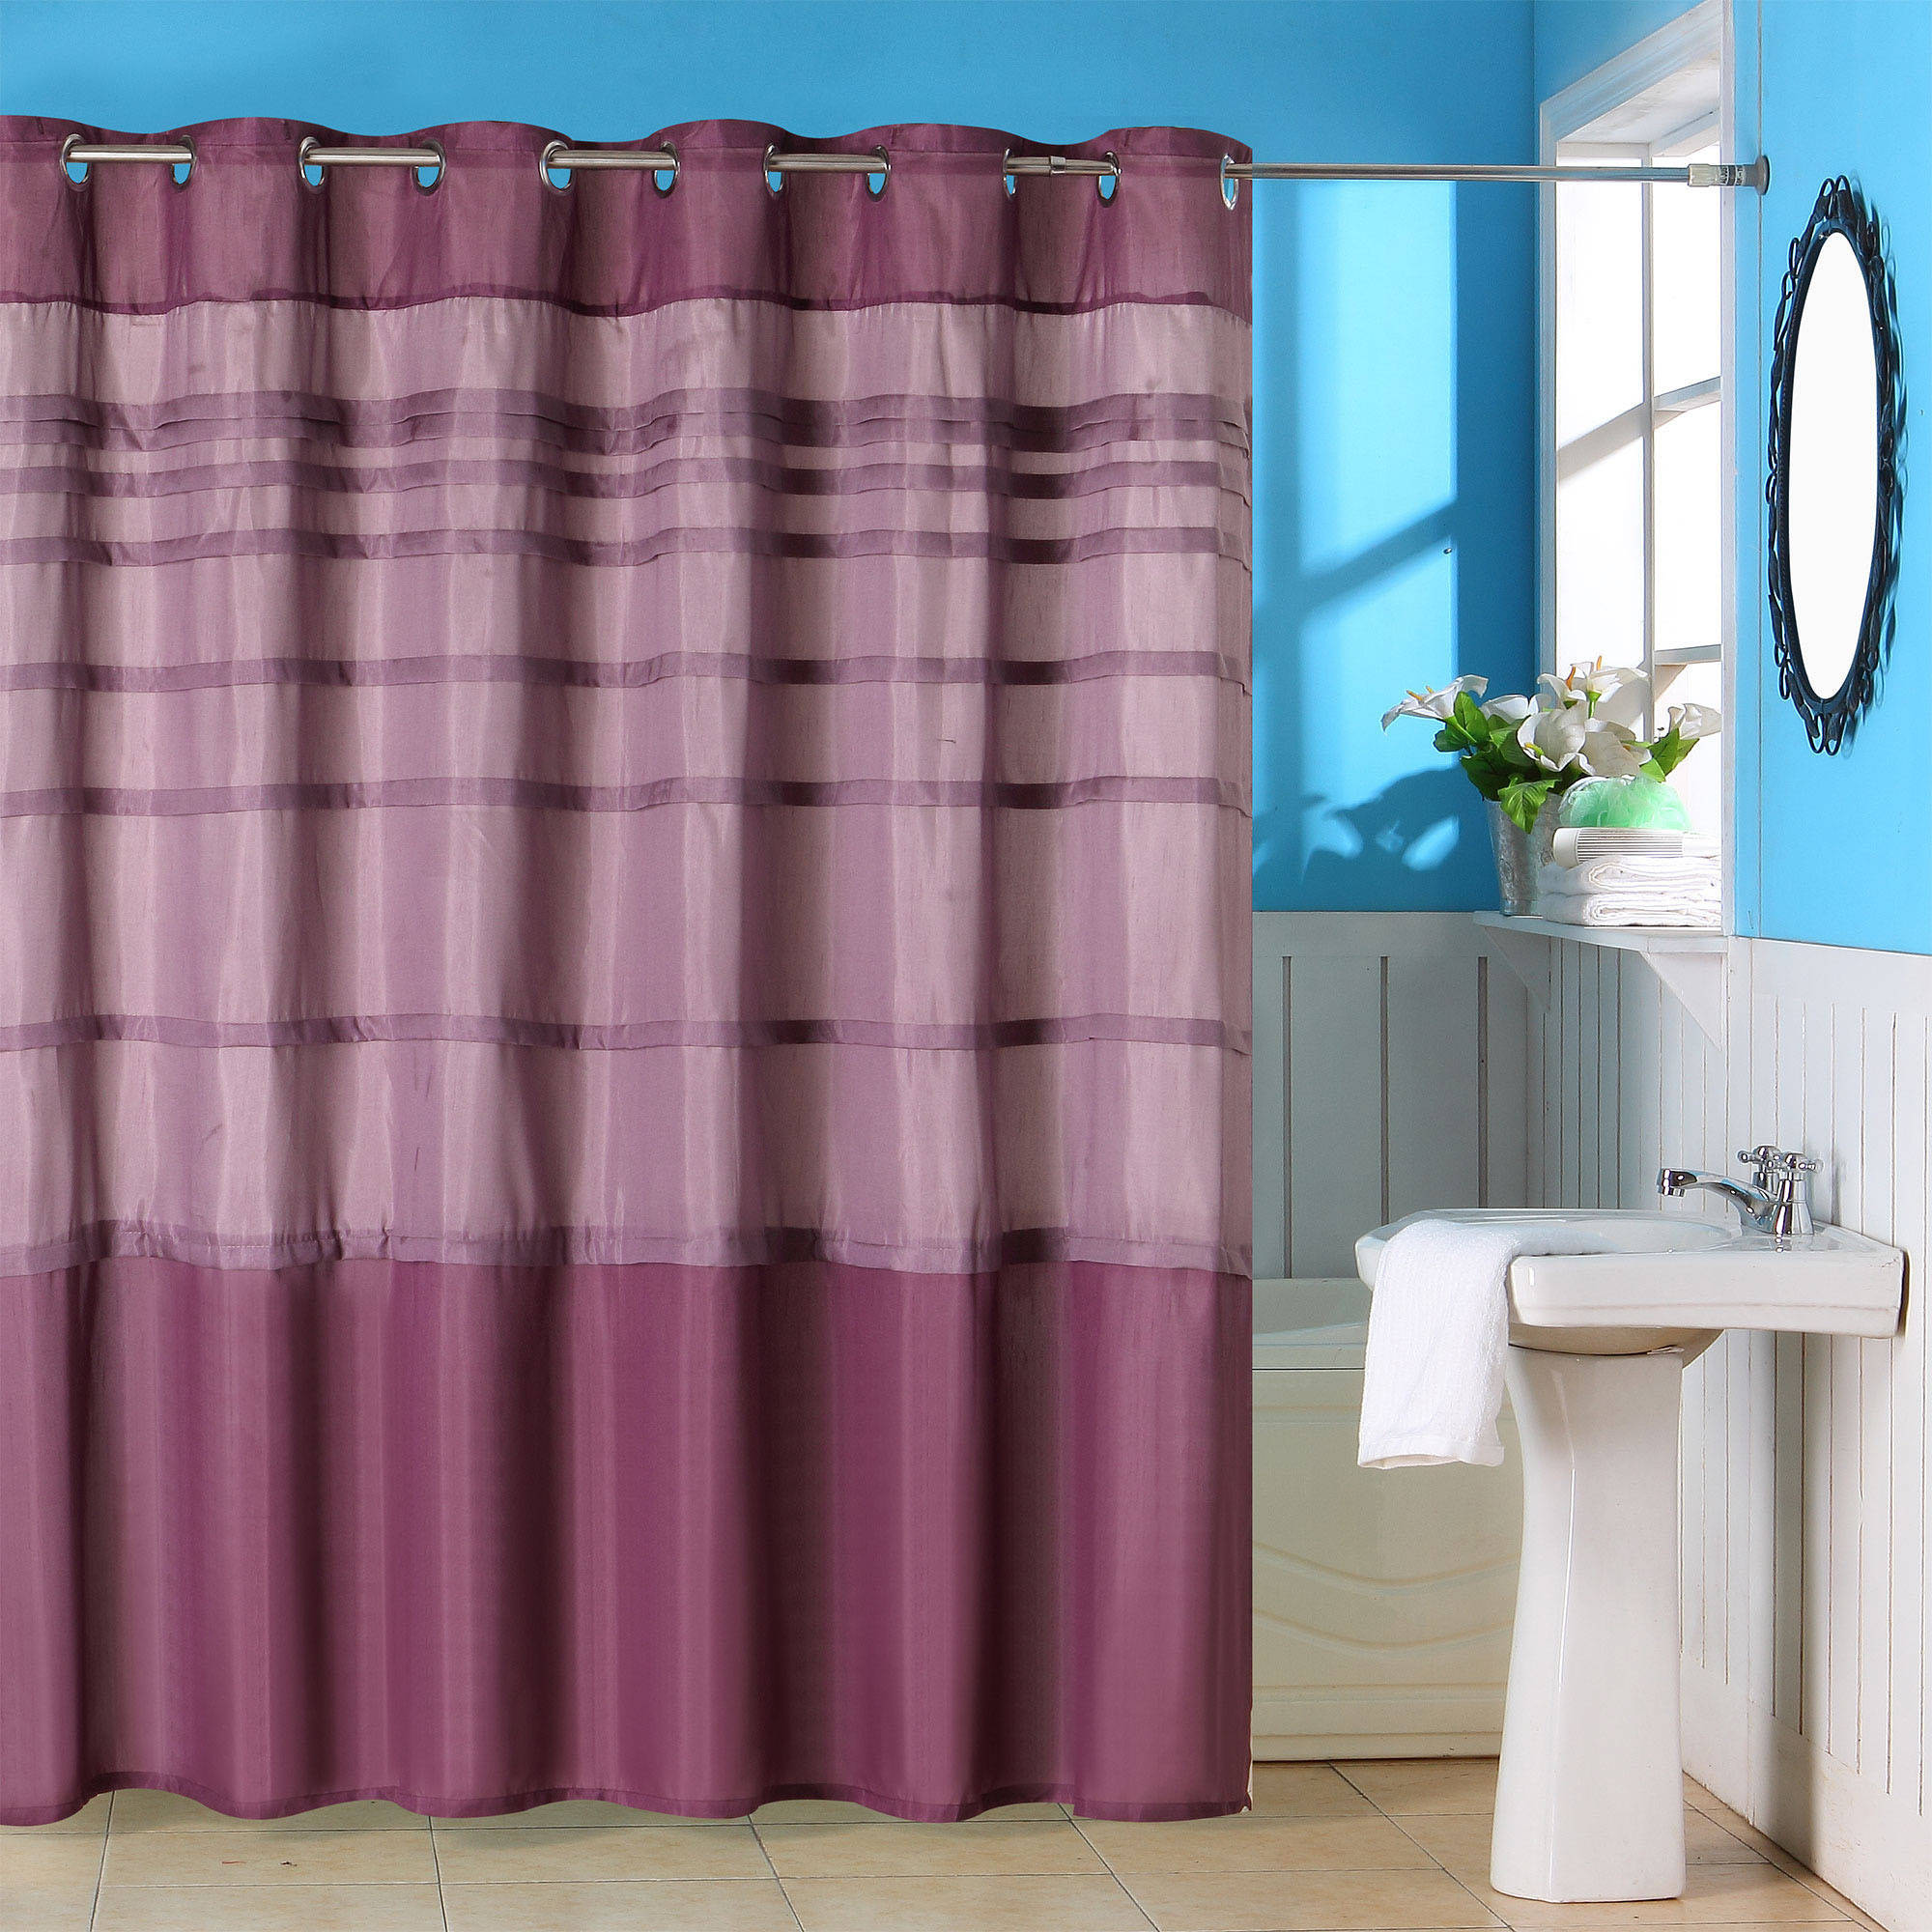 Somerset Orleans Pintuck Home Shower Curtain with Buttonholes